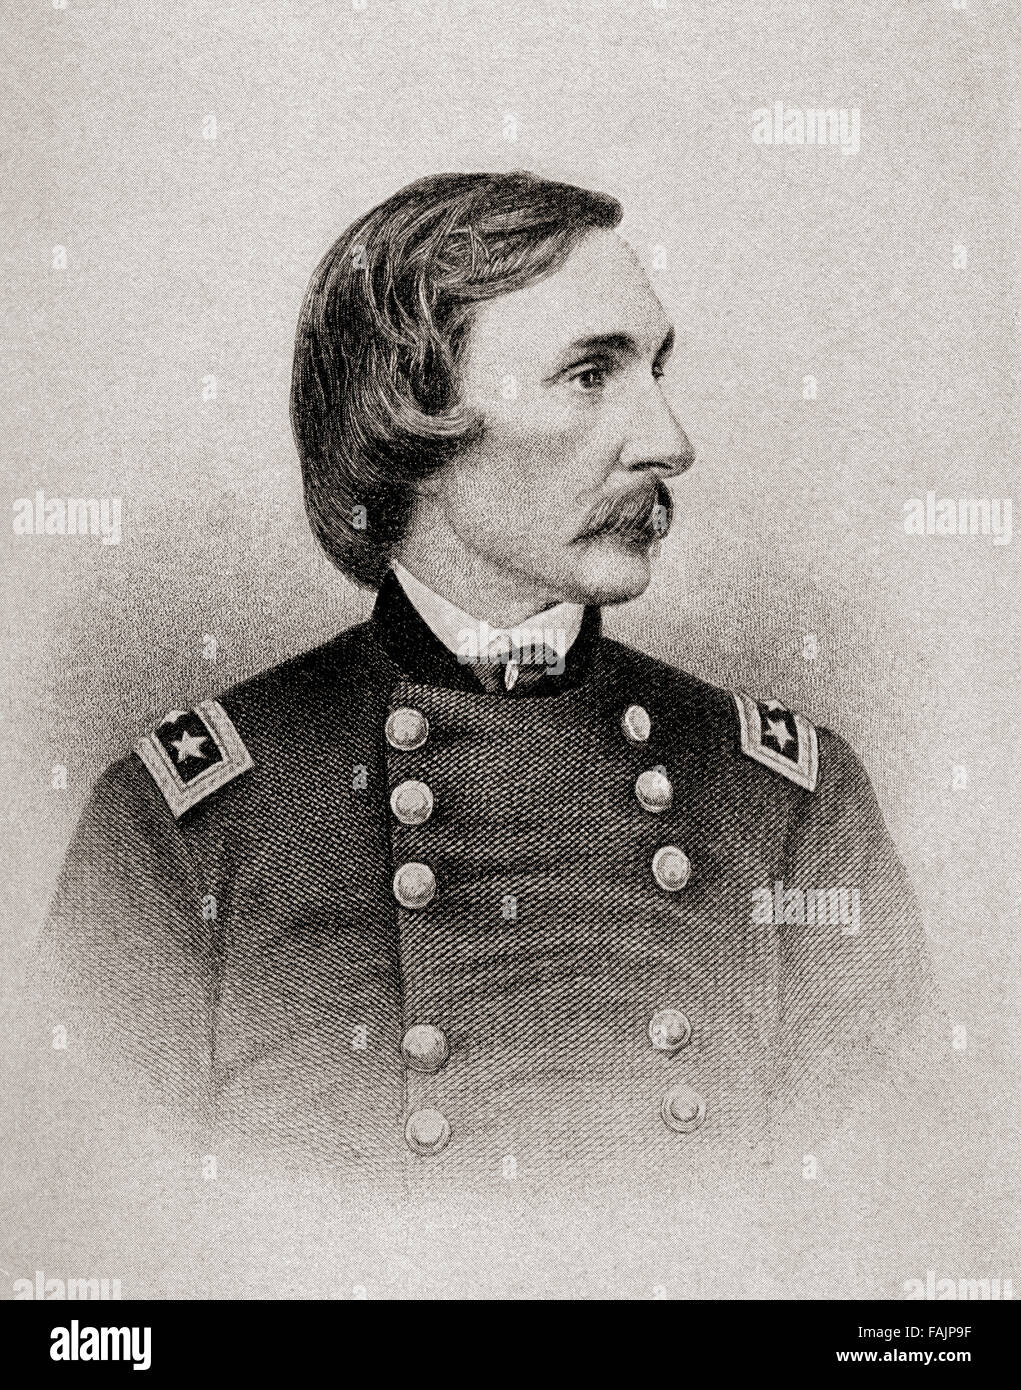 Gouverneur Kemble Warren, 1830 – 1882.  Civil engineer and Union Army general during the American Civil War. - Stock Image